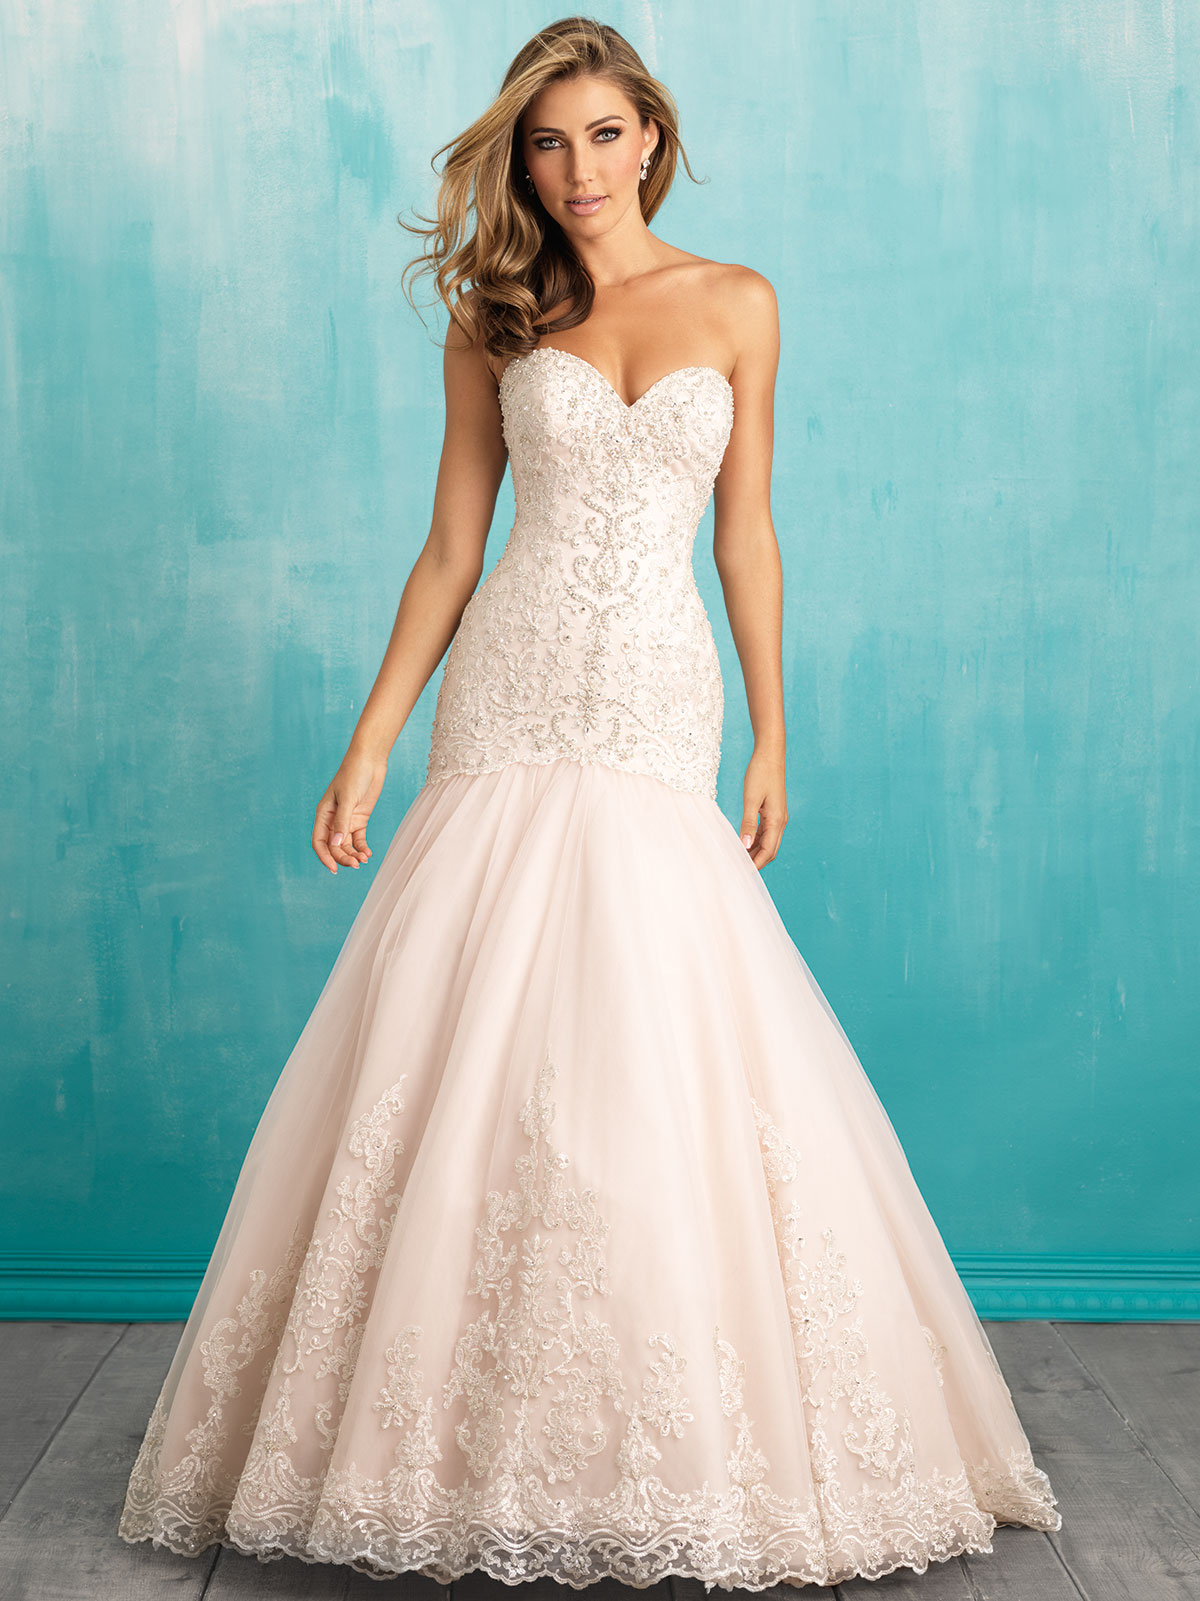 Allure Wedding Dresses Houston Tx : Allure beaded wedding dress bridals c v neck mermaid couture